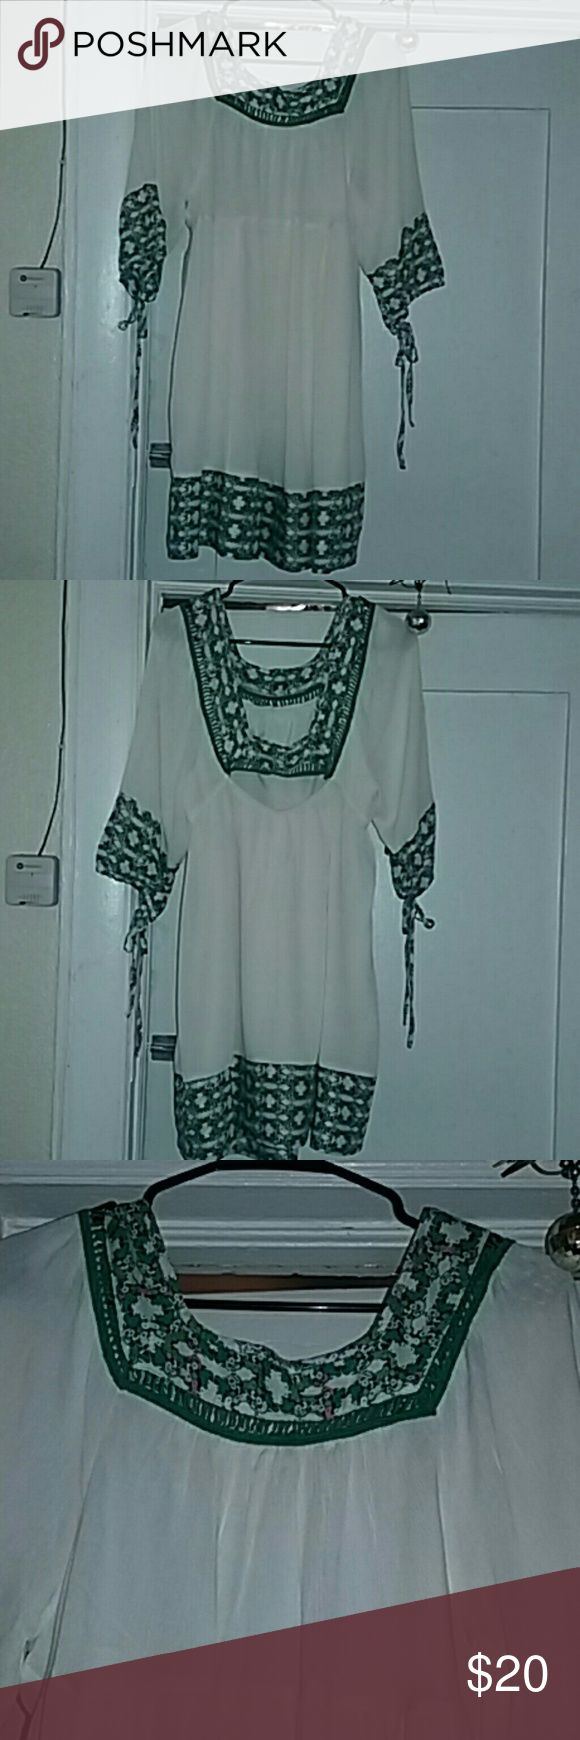 Esley Boho Dress This gorgeous dress has a square front neckline, back also has a deep square neckline with a middle slit opening which has elastic gathering. Front neckline, sleeves end, and hemline all are trimmed in a mult-pattern green, orange cross type design, very pretty. 3/4 sleeves have a tie at the end, neckline has a green crochet trimming,  dress has two inner side pockets, fully lined. This dress is made of rayon, cotton and spandex. Size Medium Color is cream,  green and…